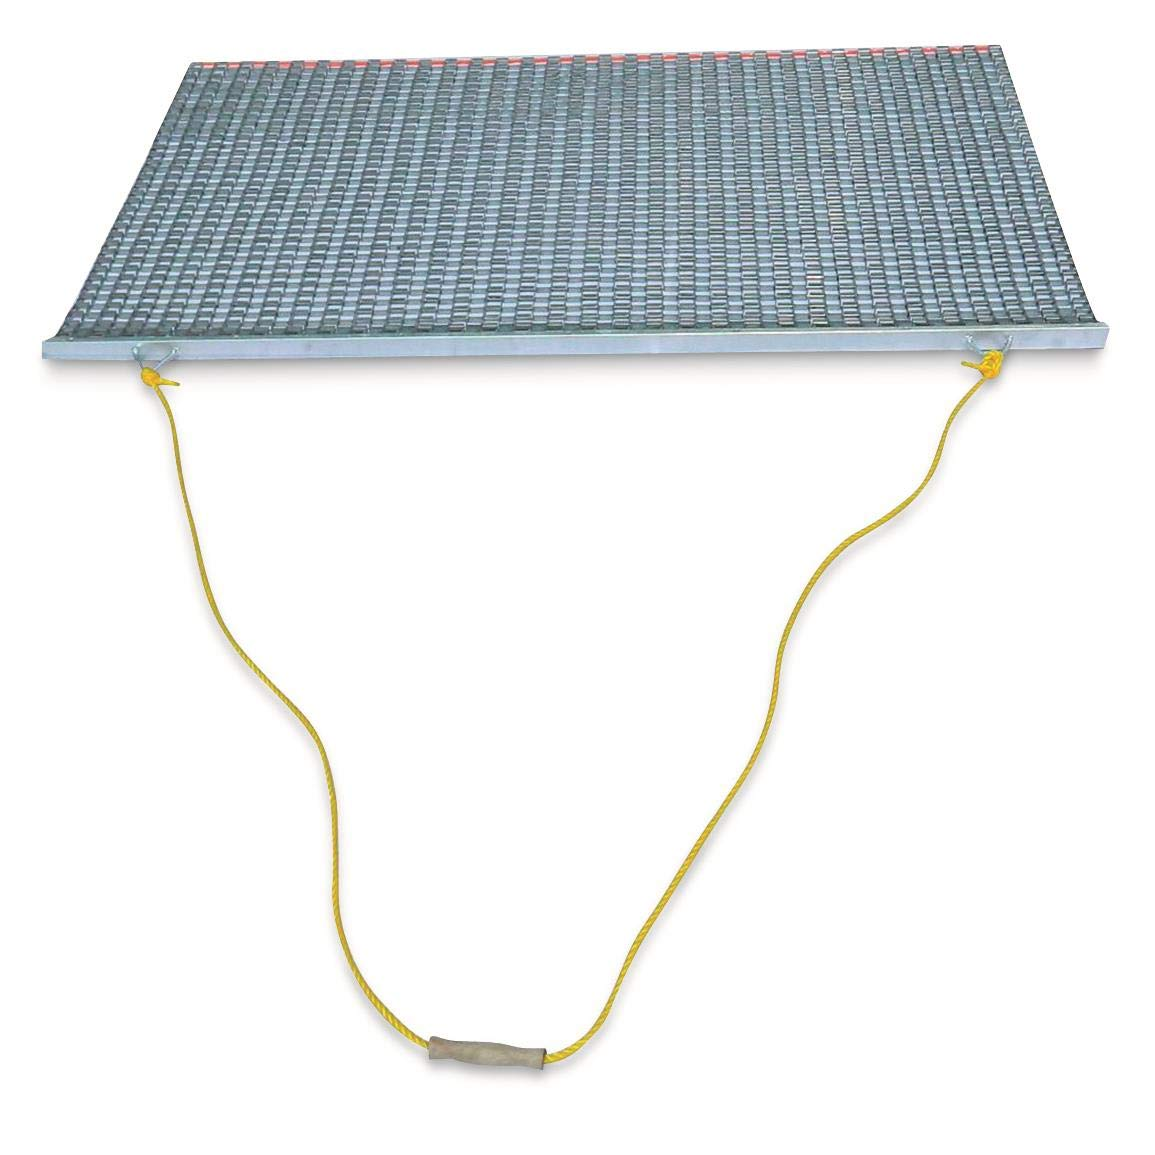 Eastern Atlantic New - Baseball & Softball Infield Drag Mat (6'Wx2'D) Steel Mesh Constructed Backed by a 3 Year Warranty by Eastern Atlantic